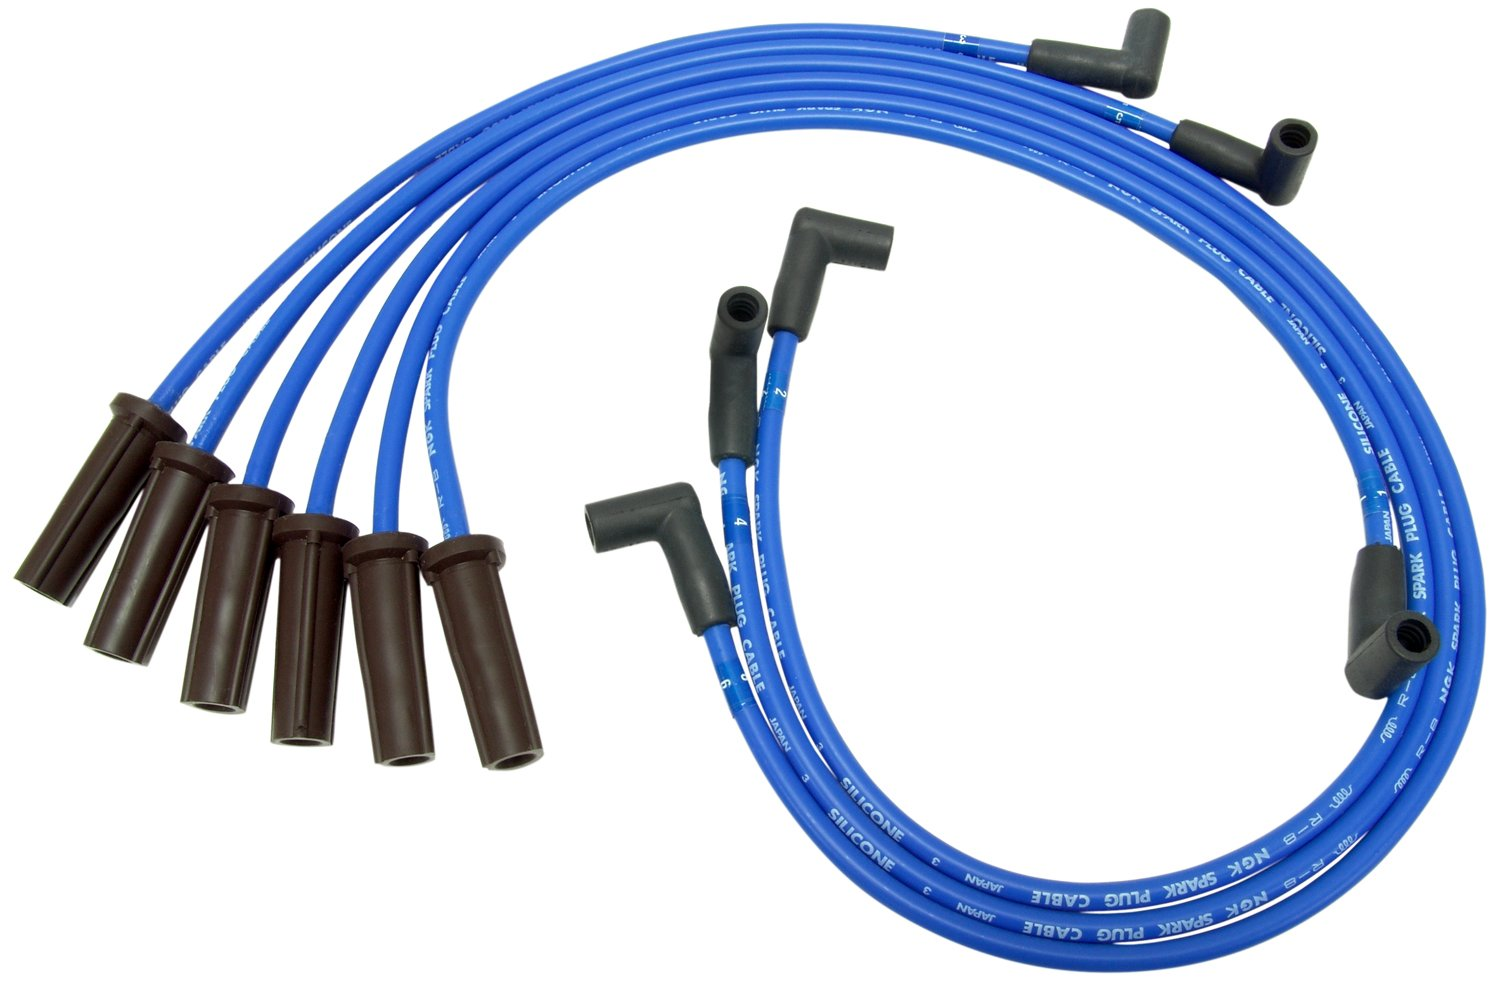 NGK RC-GMZ045 Spark Plug Wire Set (51217),1 Pack